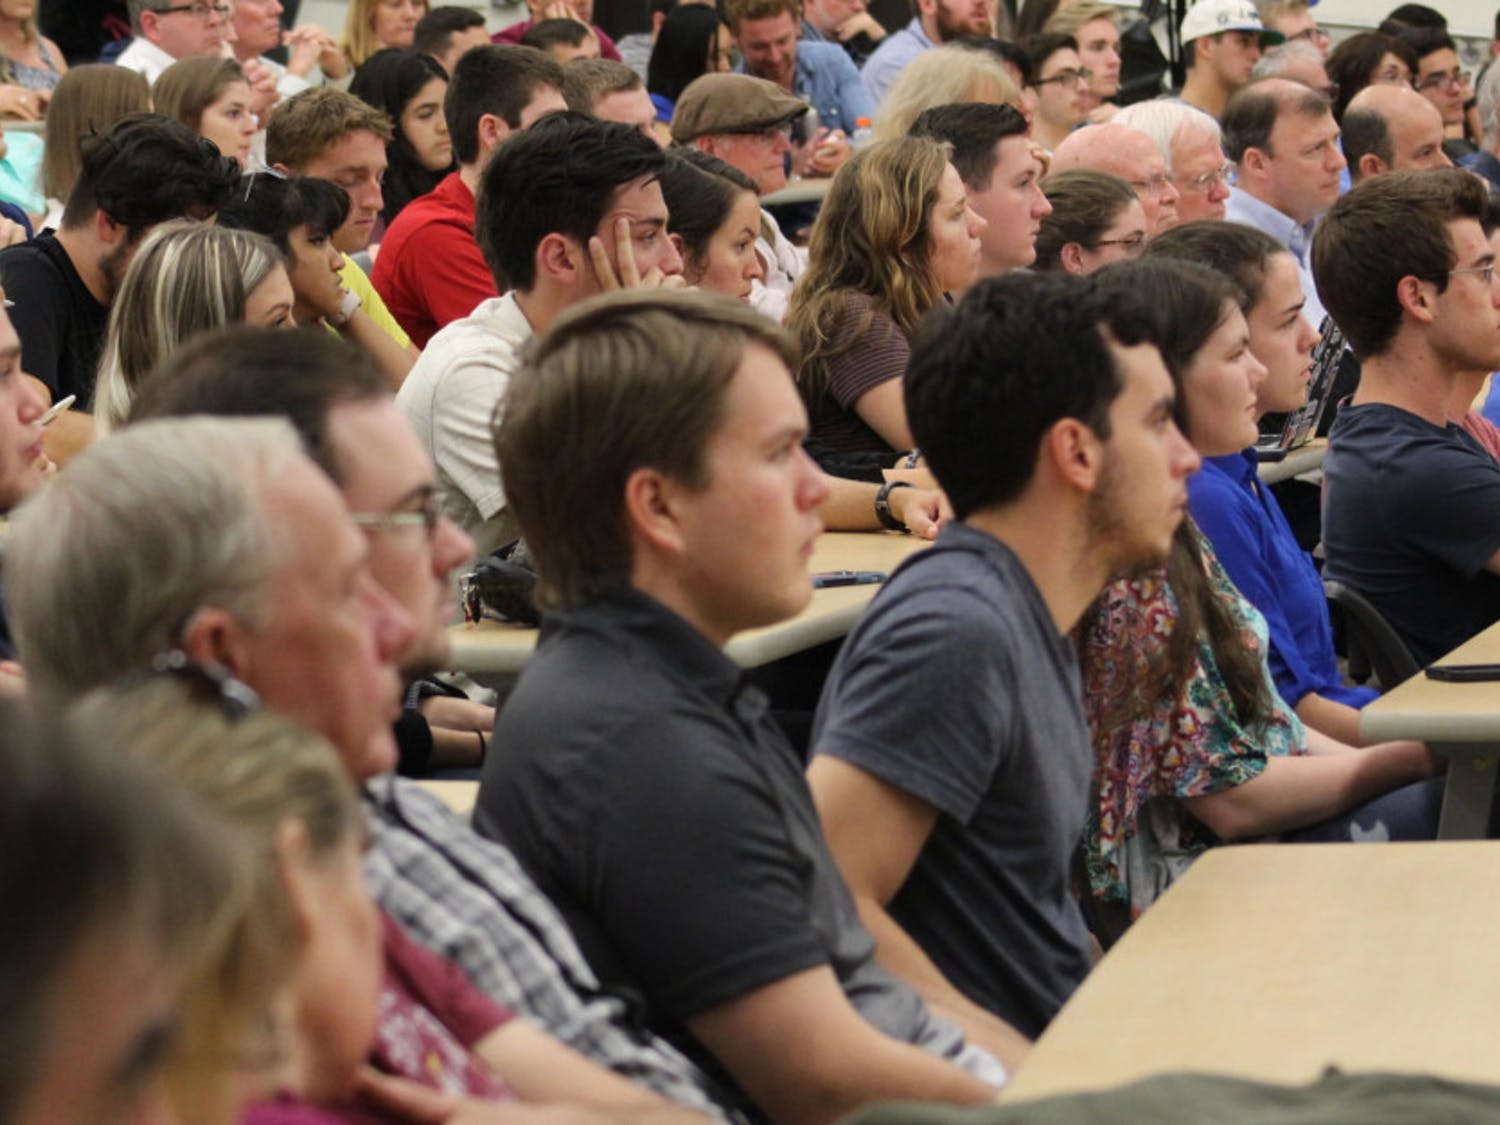 Approximately 300 people gathered in Carleton Auditorium on Thursday to hear Dinesh D'Souza talk fascism and race.